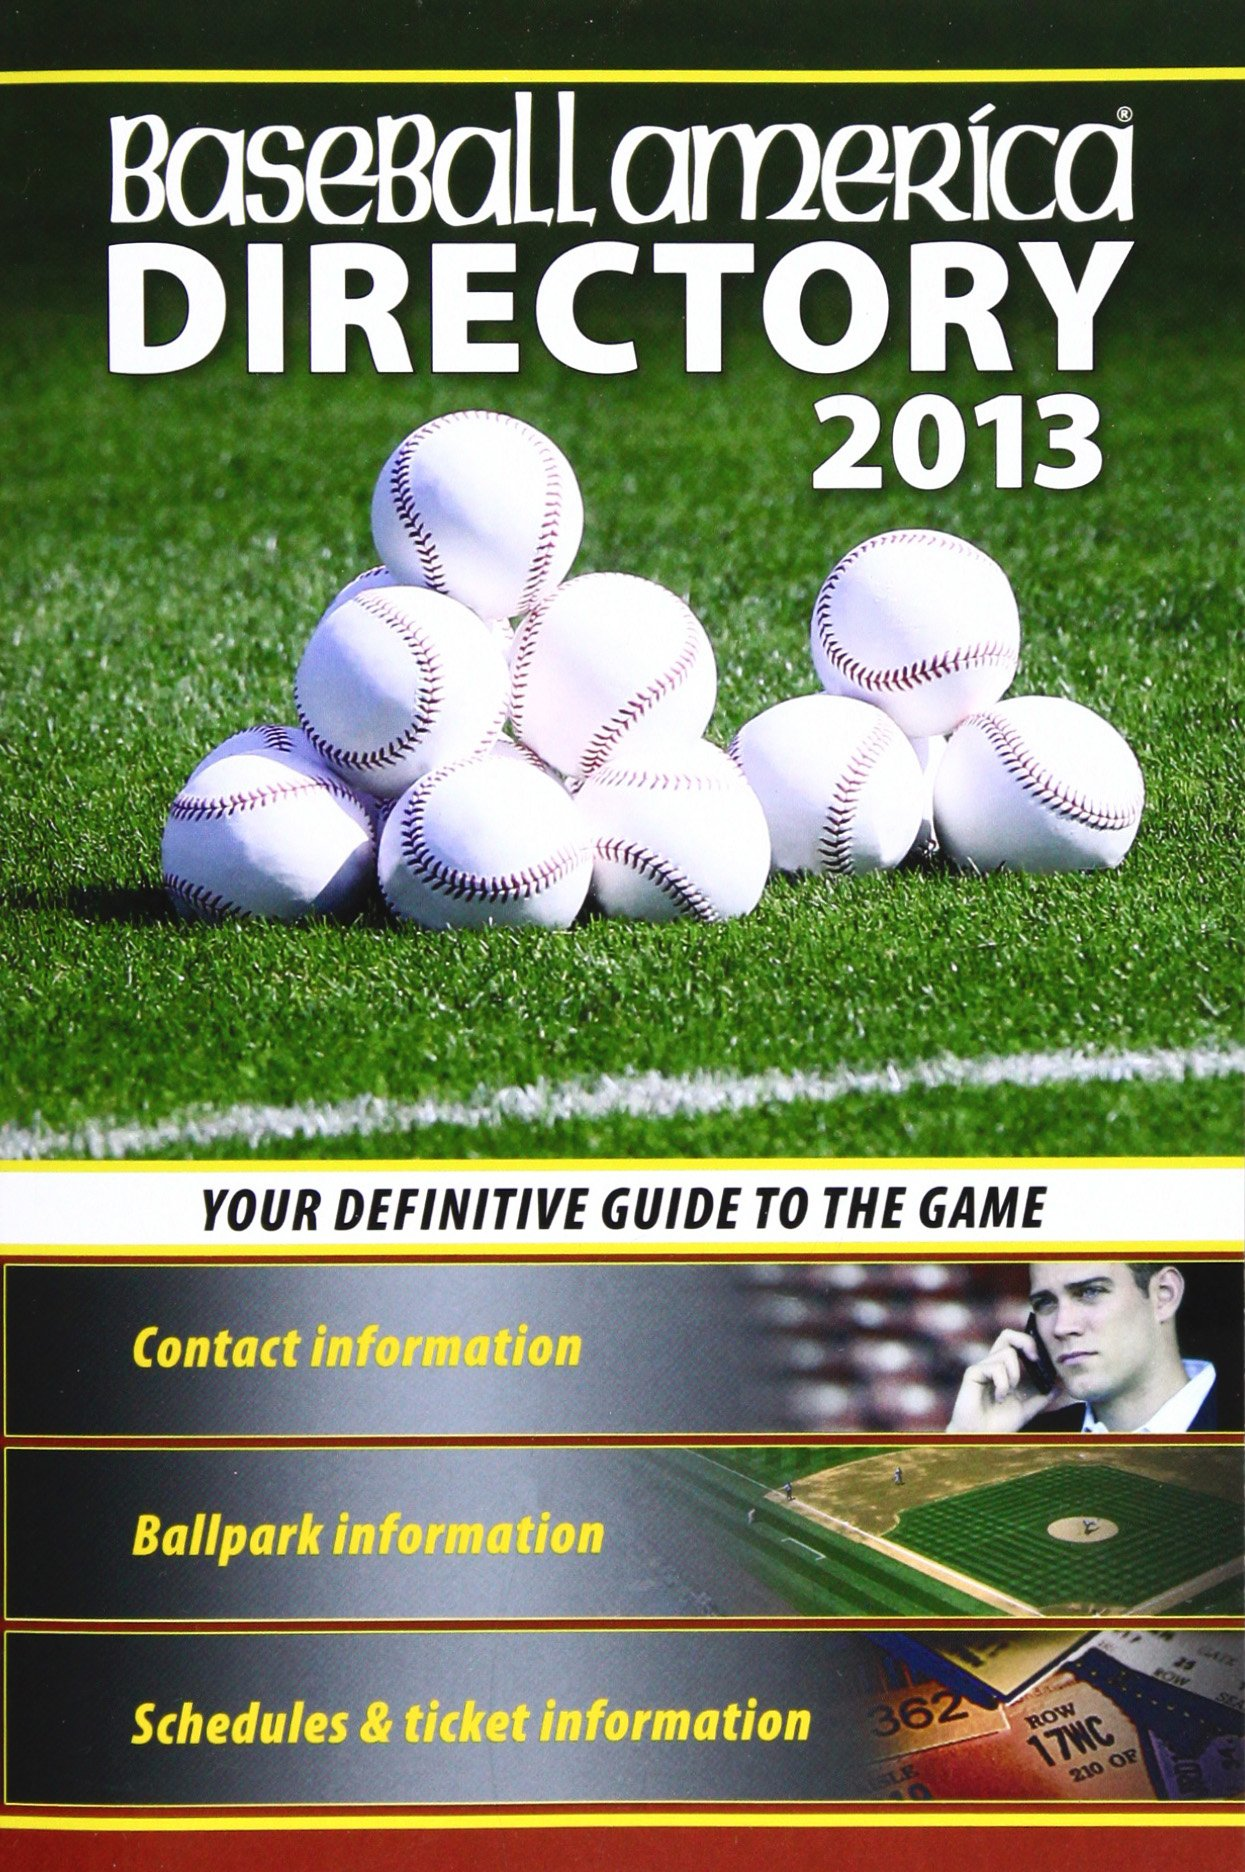 Image OfBaseball America 2013 Directory: 2013 Baseball Reference, Schedules, Contacts, Phone Info & More (Baseball America Directory)